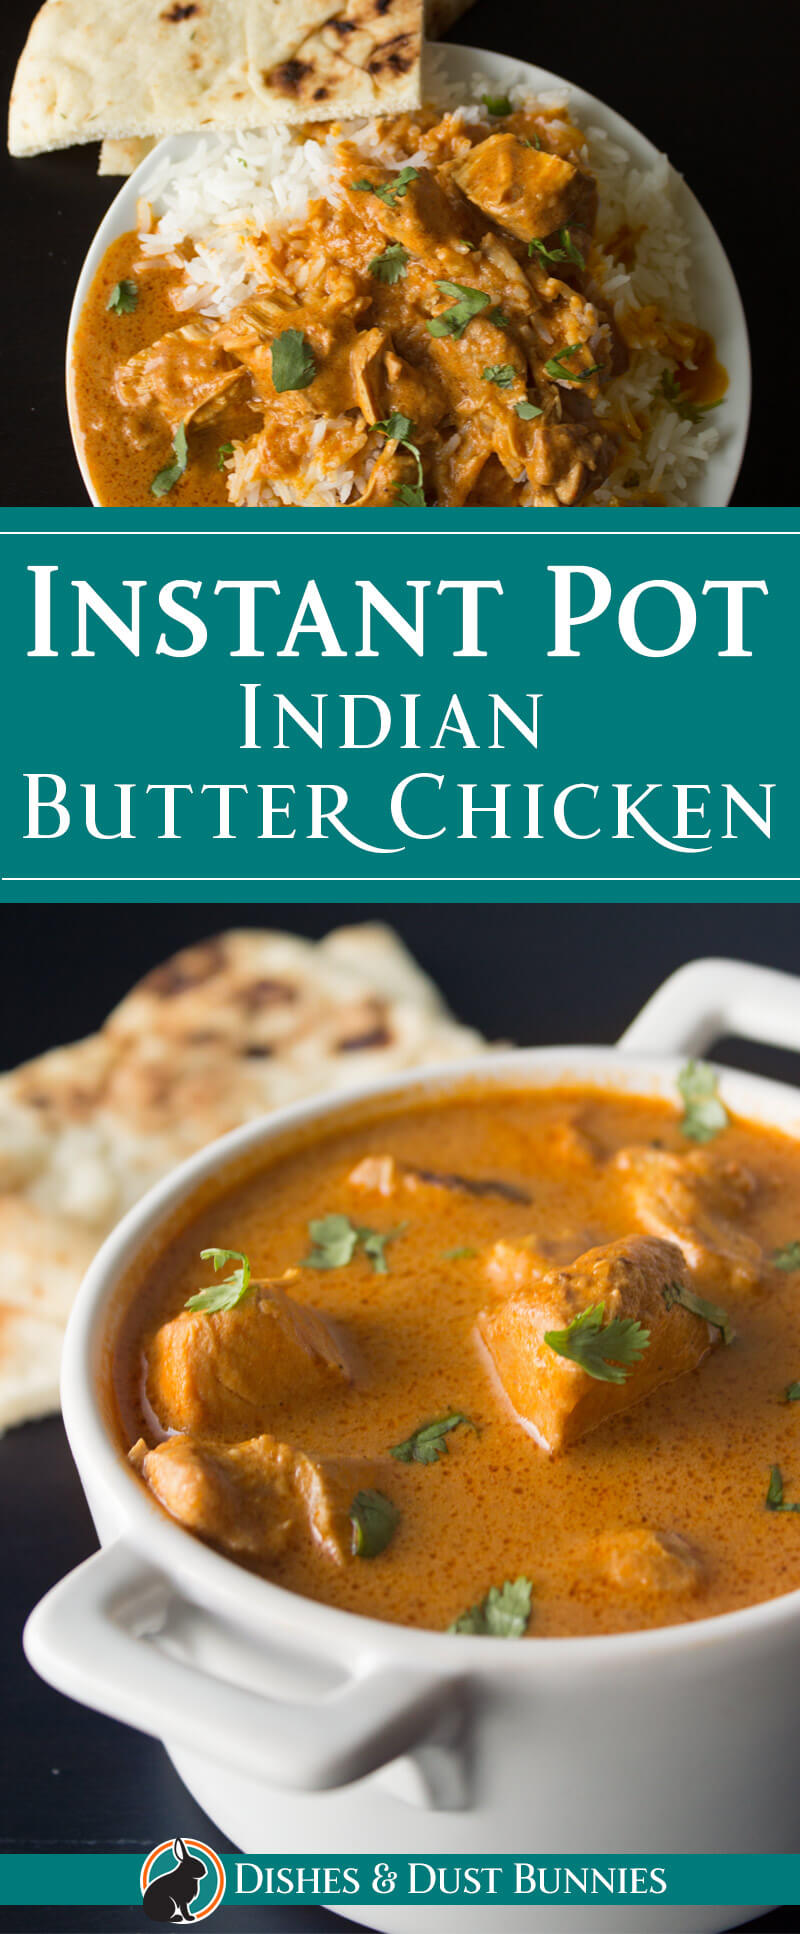 Instant Pot Indian Butter Chicken from dishesandustbunnies.com